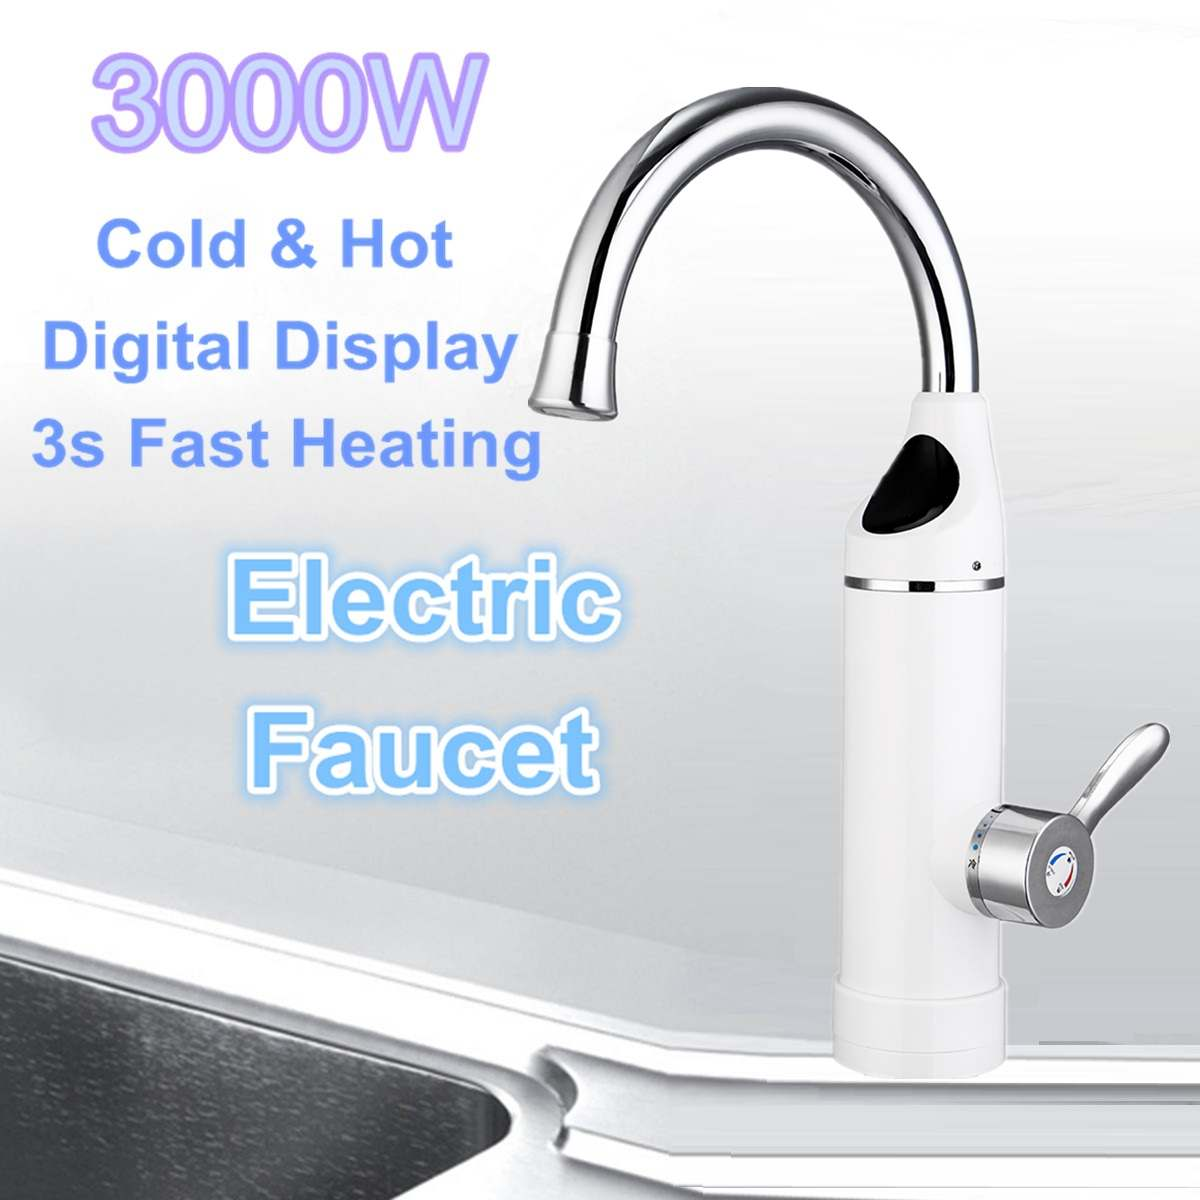 Electric Kitchen Water Heater Tap Instant Hot Water Faucet Heaters Cold Heating Faucet Bathroom Tankless Instantaneous 3000WElectric Kitchen Water Heater Tap Instant Hot Water Faucet Heaters Cold Heating Faucet Bathroom Tankless Instantaneous 3000W